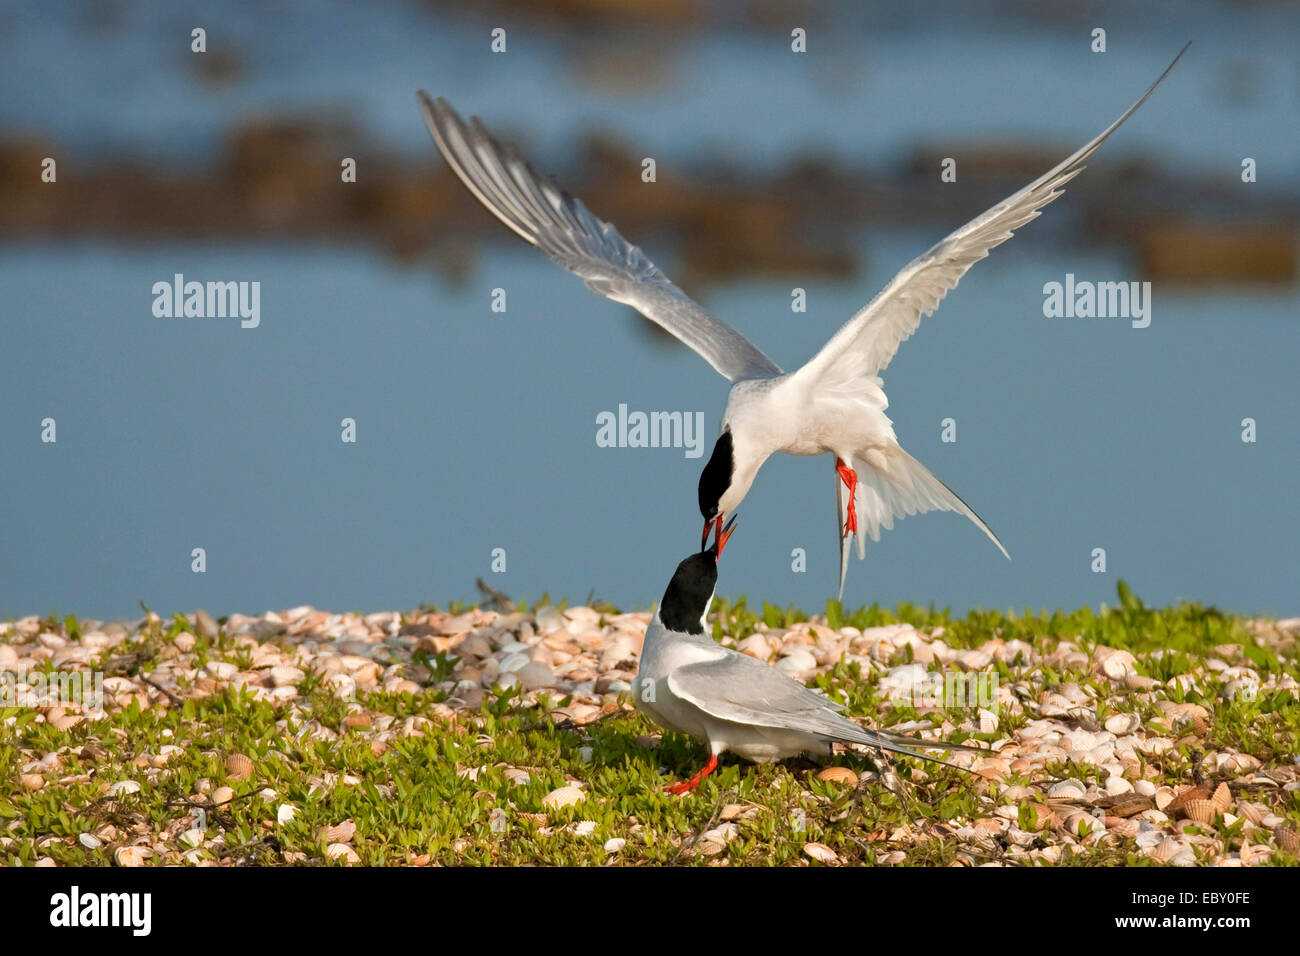 common tern (Sterna hirundo), two birds attacking each other at a shore covered with grass and countless seashells, - Stock Image